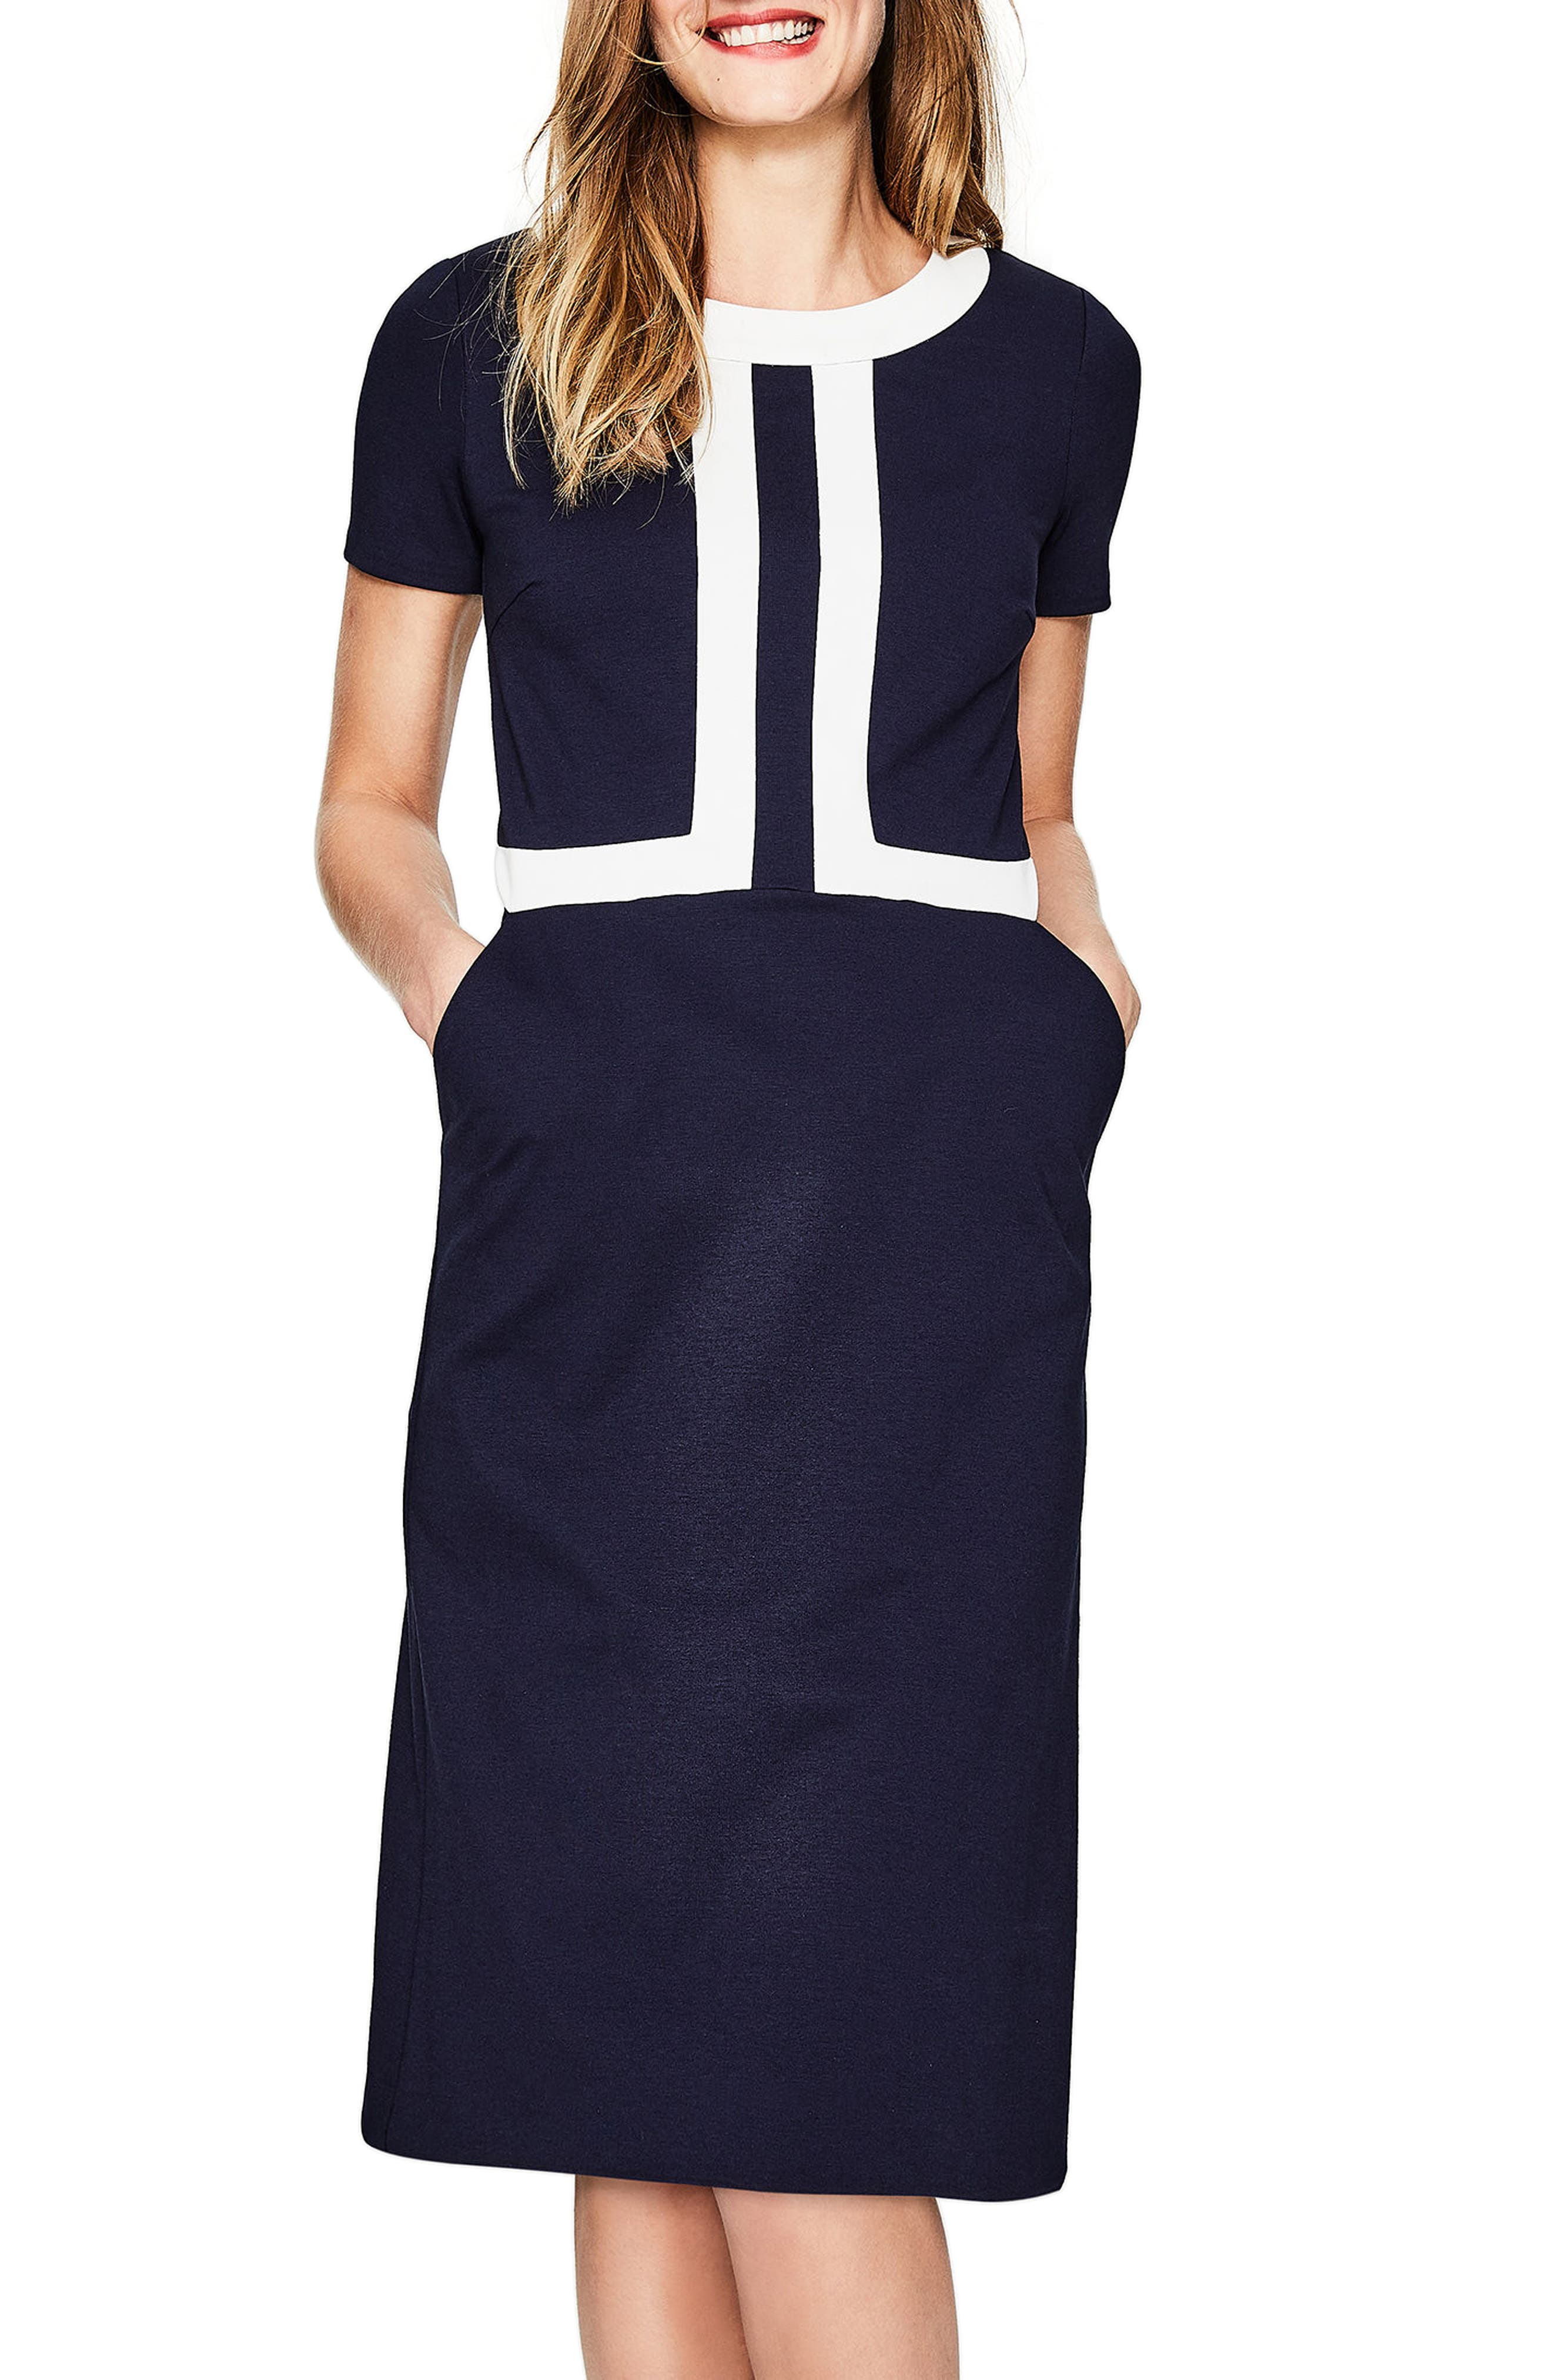 Colorblock A-Line Dress,                             Main thumbnail 1, color,                             Navy/ Ivory